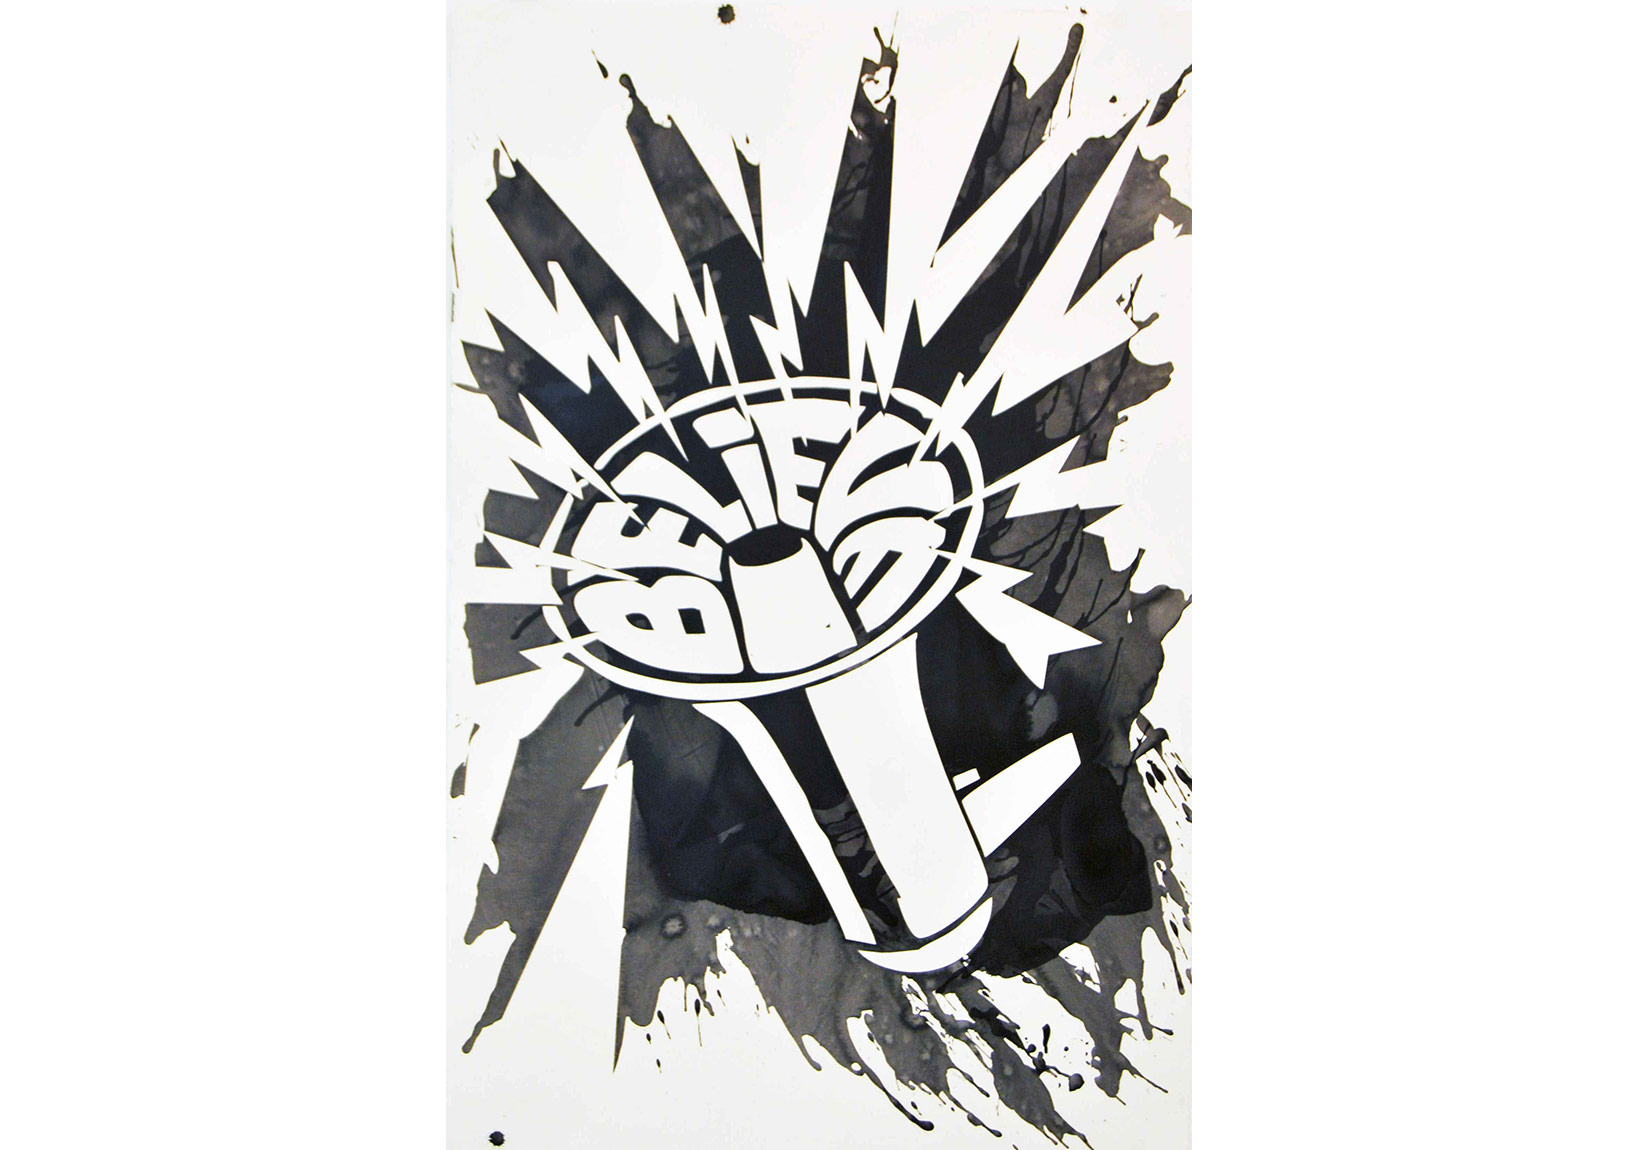 Kannibale (Chemical Brothers) 5, 2007. Ink on paper, 102 x 65,5 cm